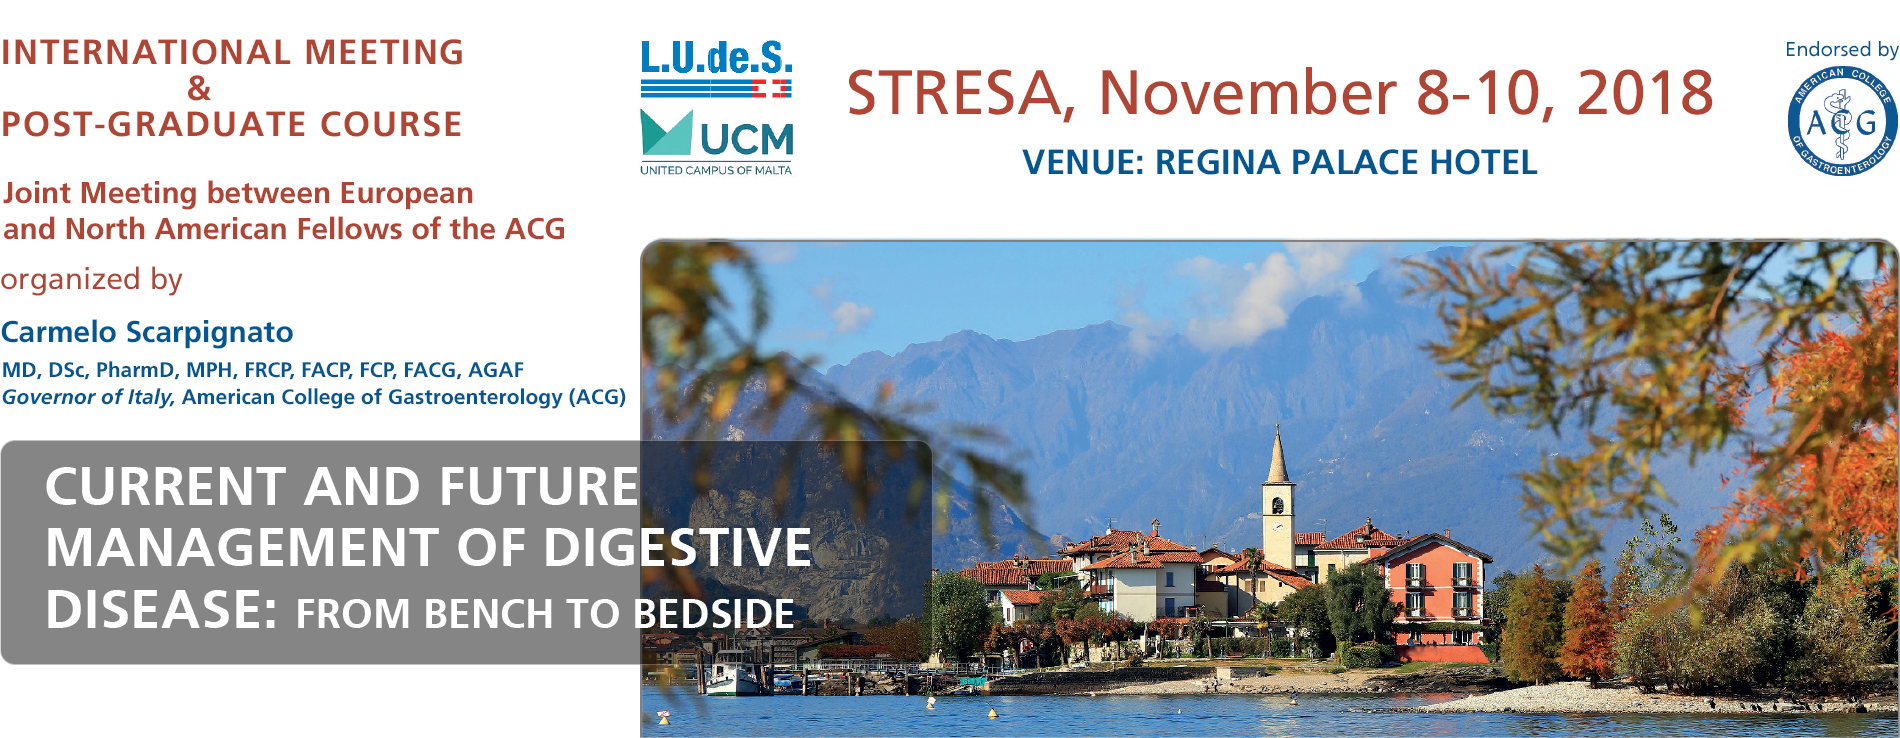 CURRENT AND FUTURE MANAGEMENT OF DIGESTIVE DISEASE - November 9-10, 2018 - Stresa